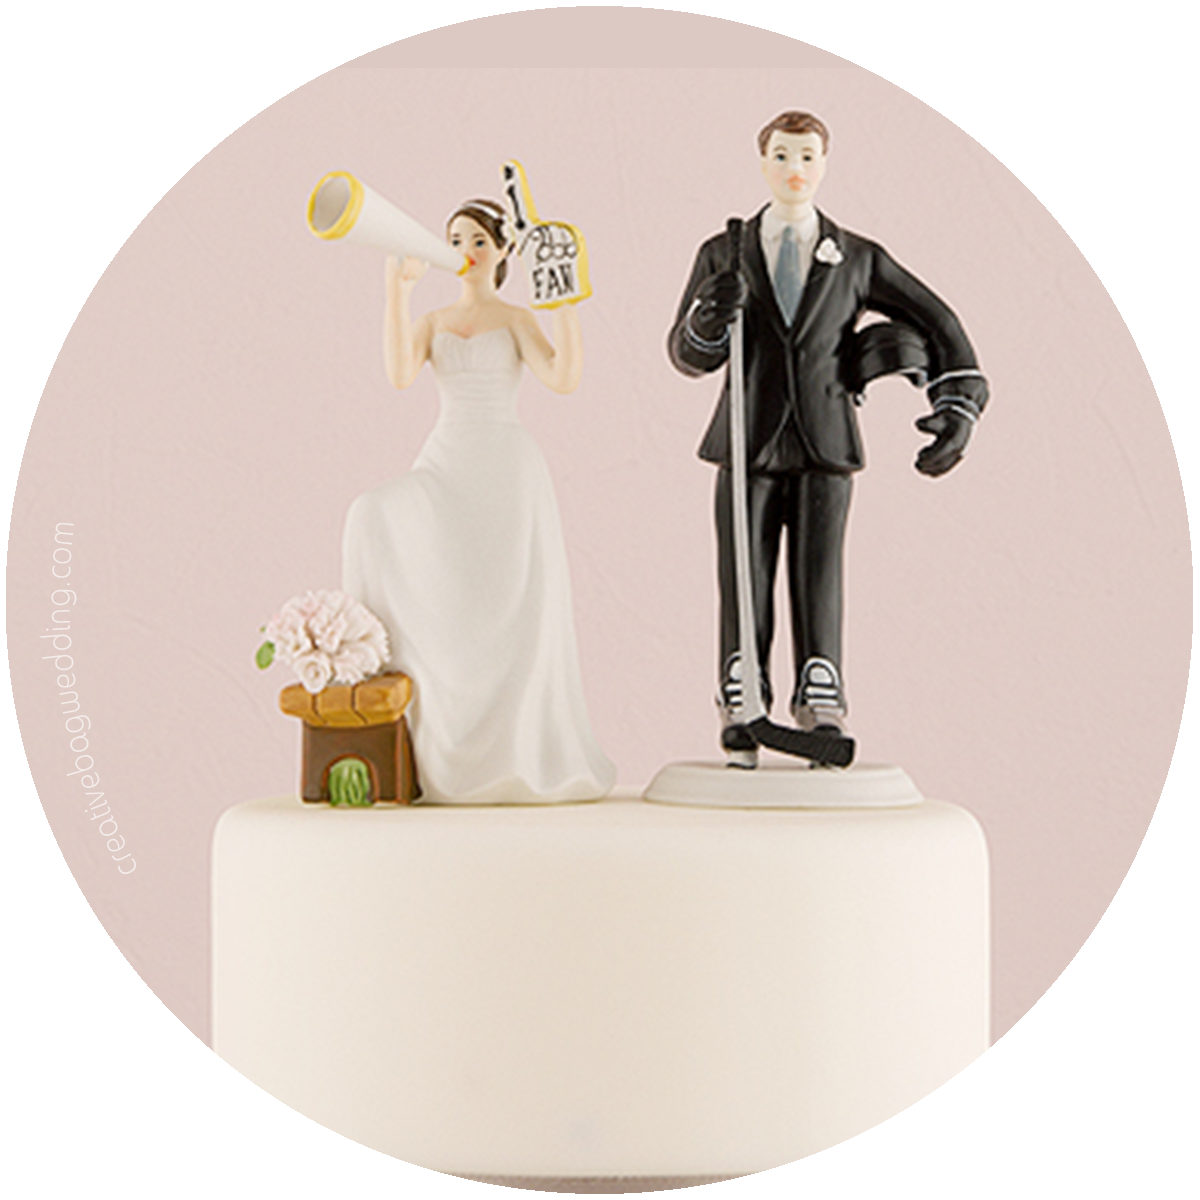 custom cake toppers from Creative Bag Wedding | Creative Bag